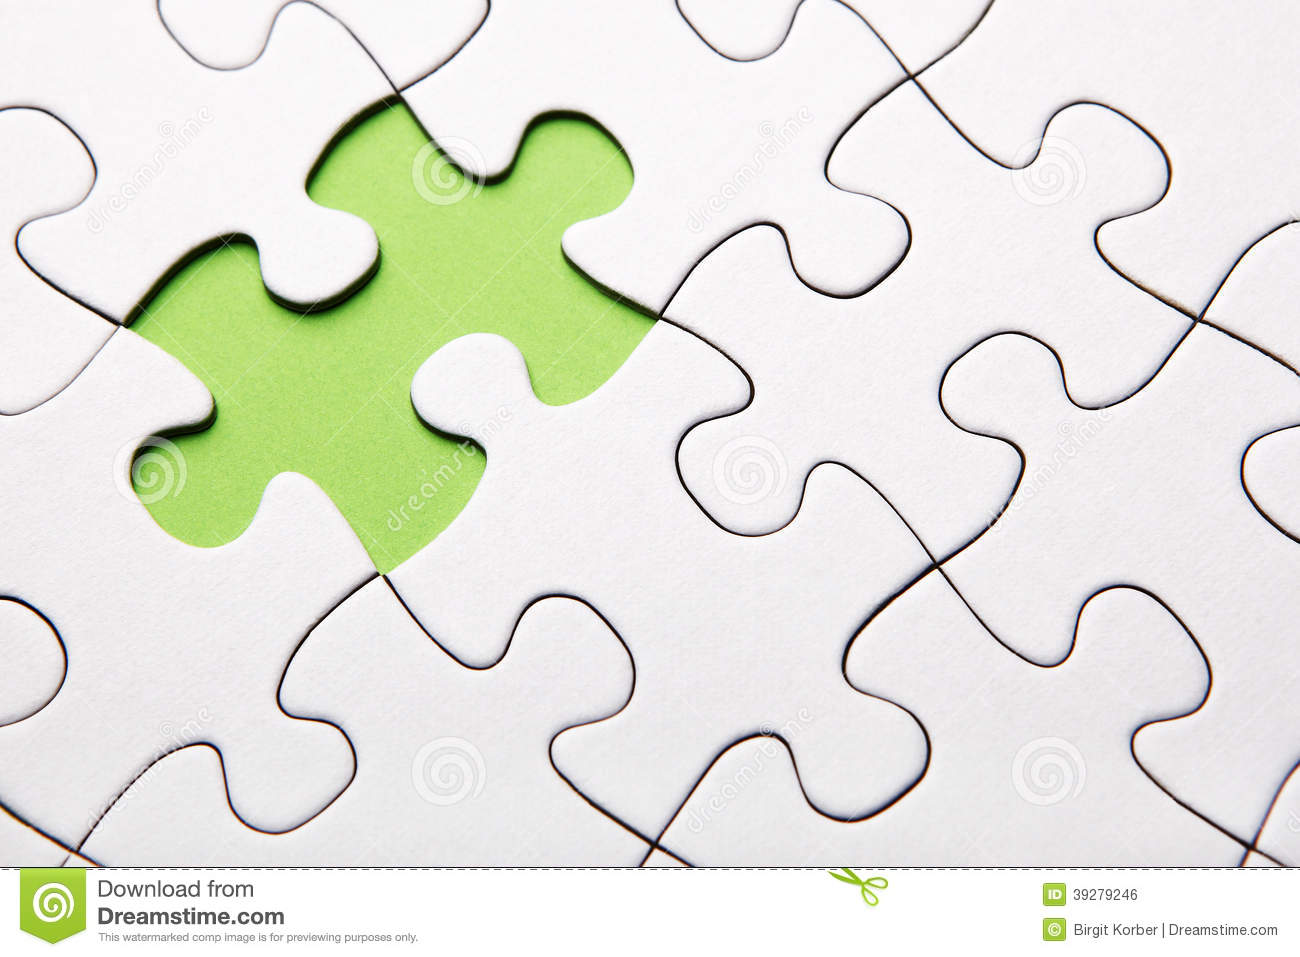 Green puzzle piece missing stock photo. Image of green ...